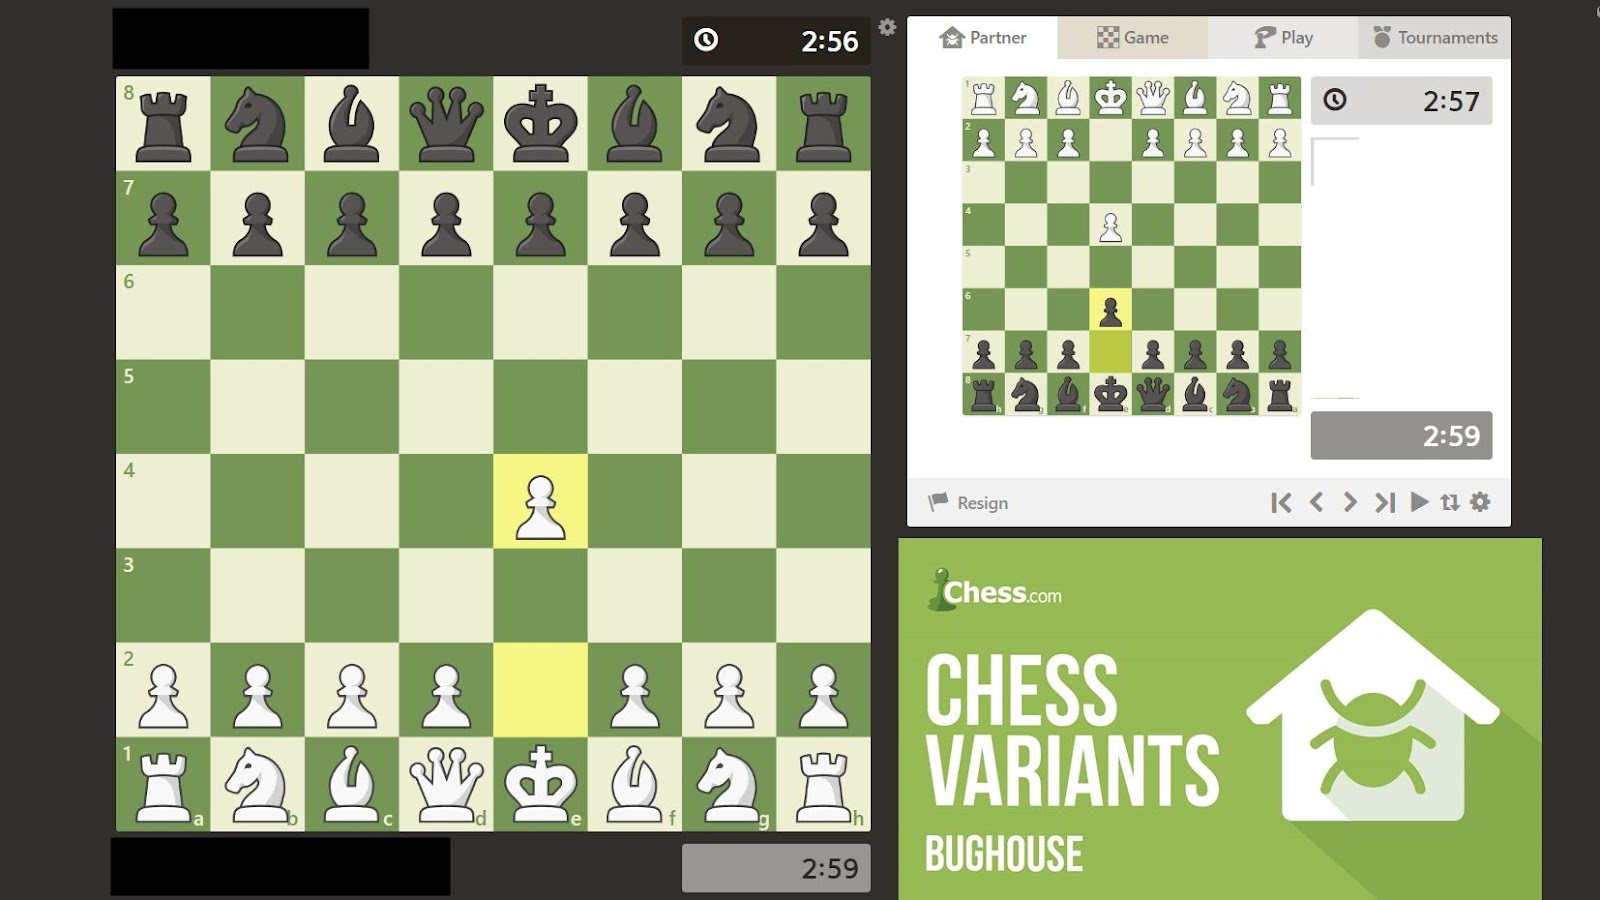 Bughouse Chess Variant